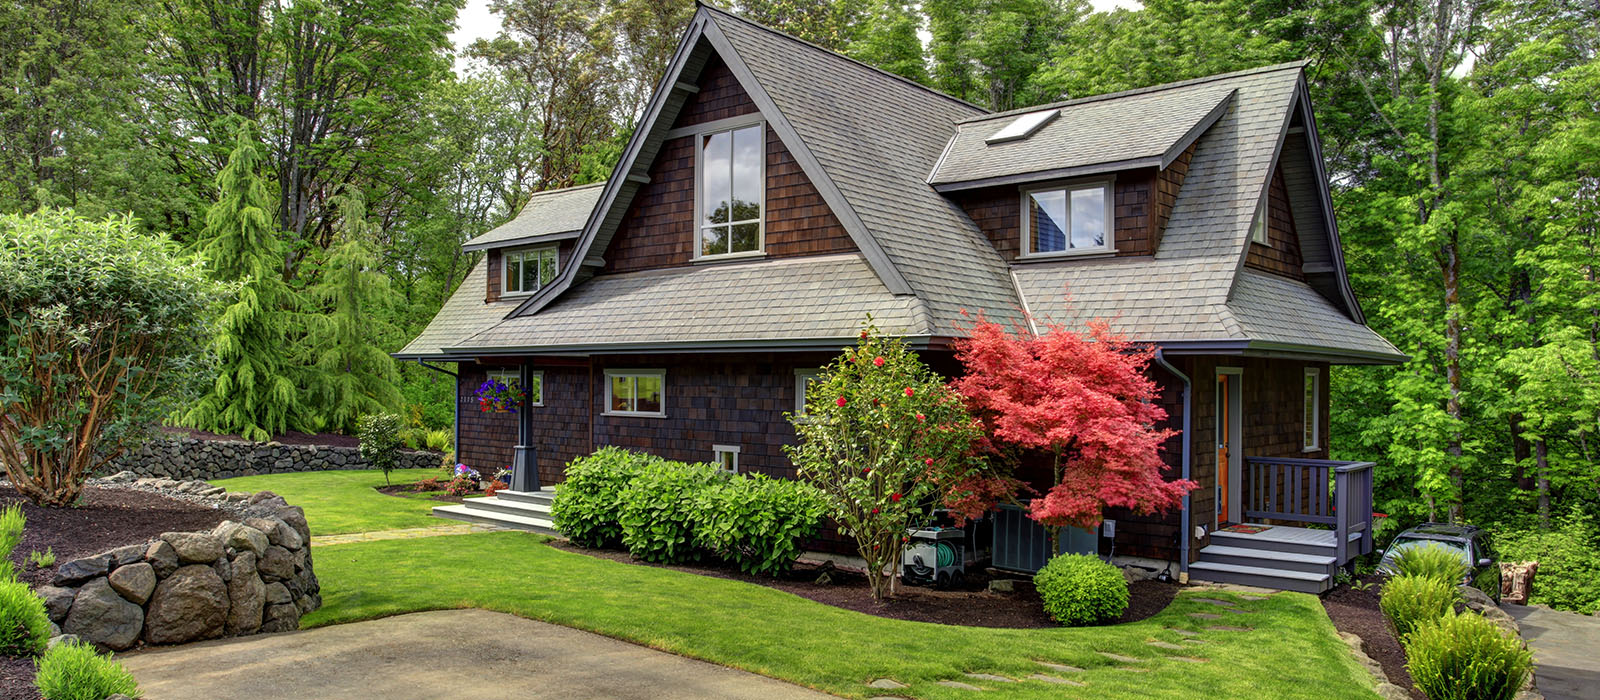 portland-relocation_0003_bigstock-House-With-Beautiful-Curb-Appe-62568296